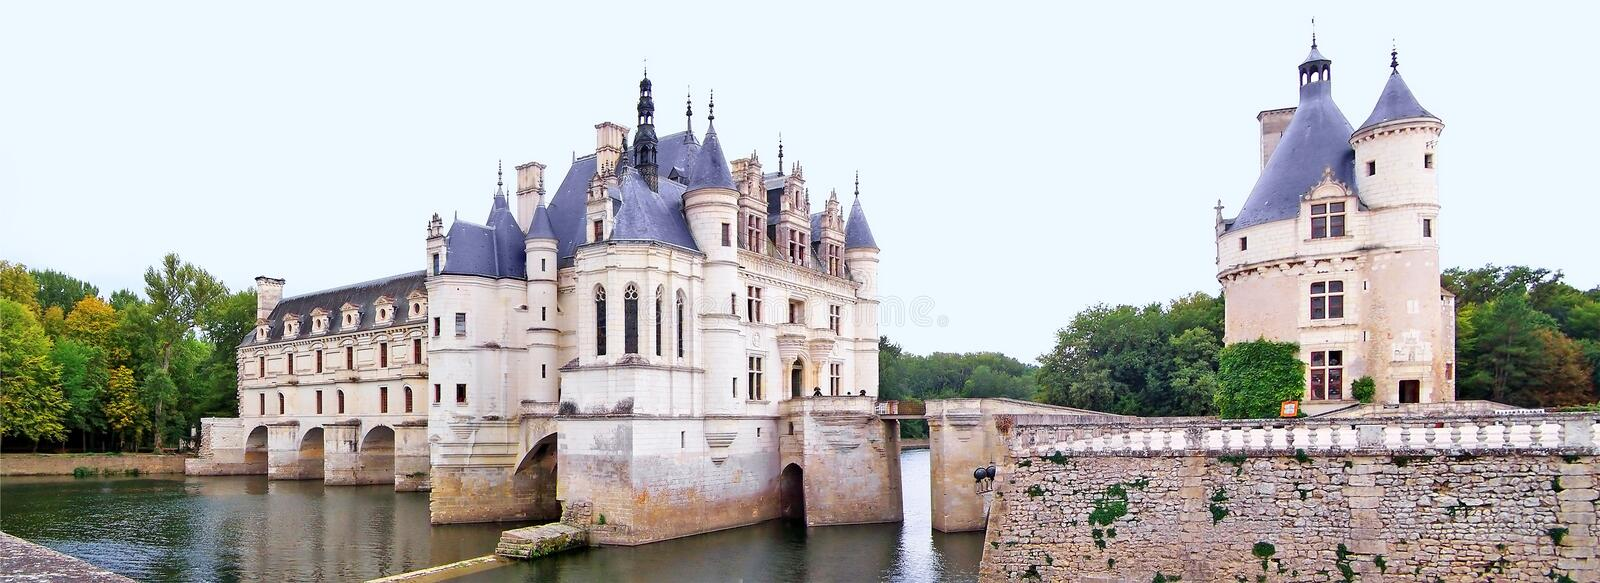 Download French Castle 01 stock image. Image of opulence, richness - 452319